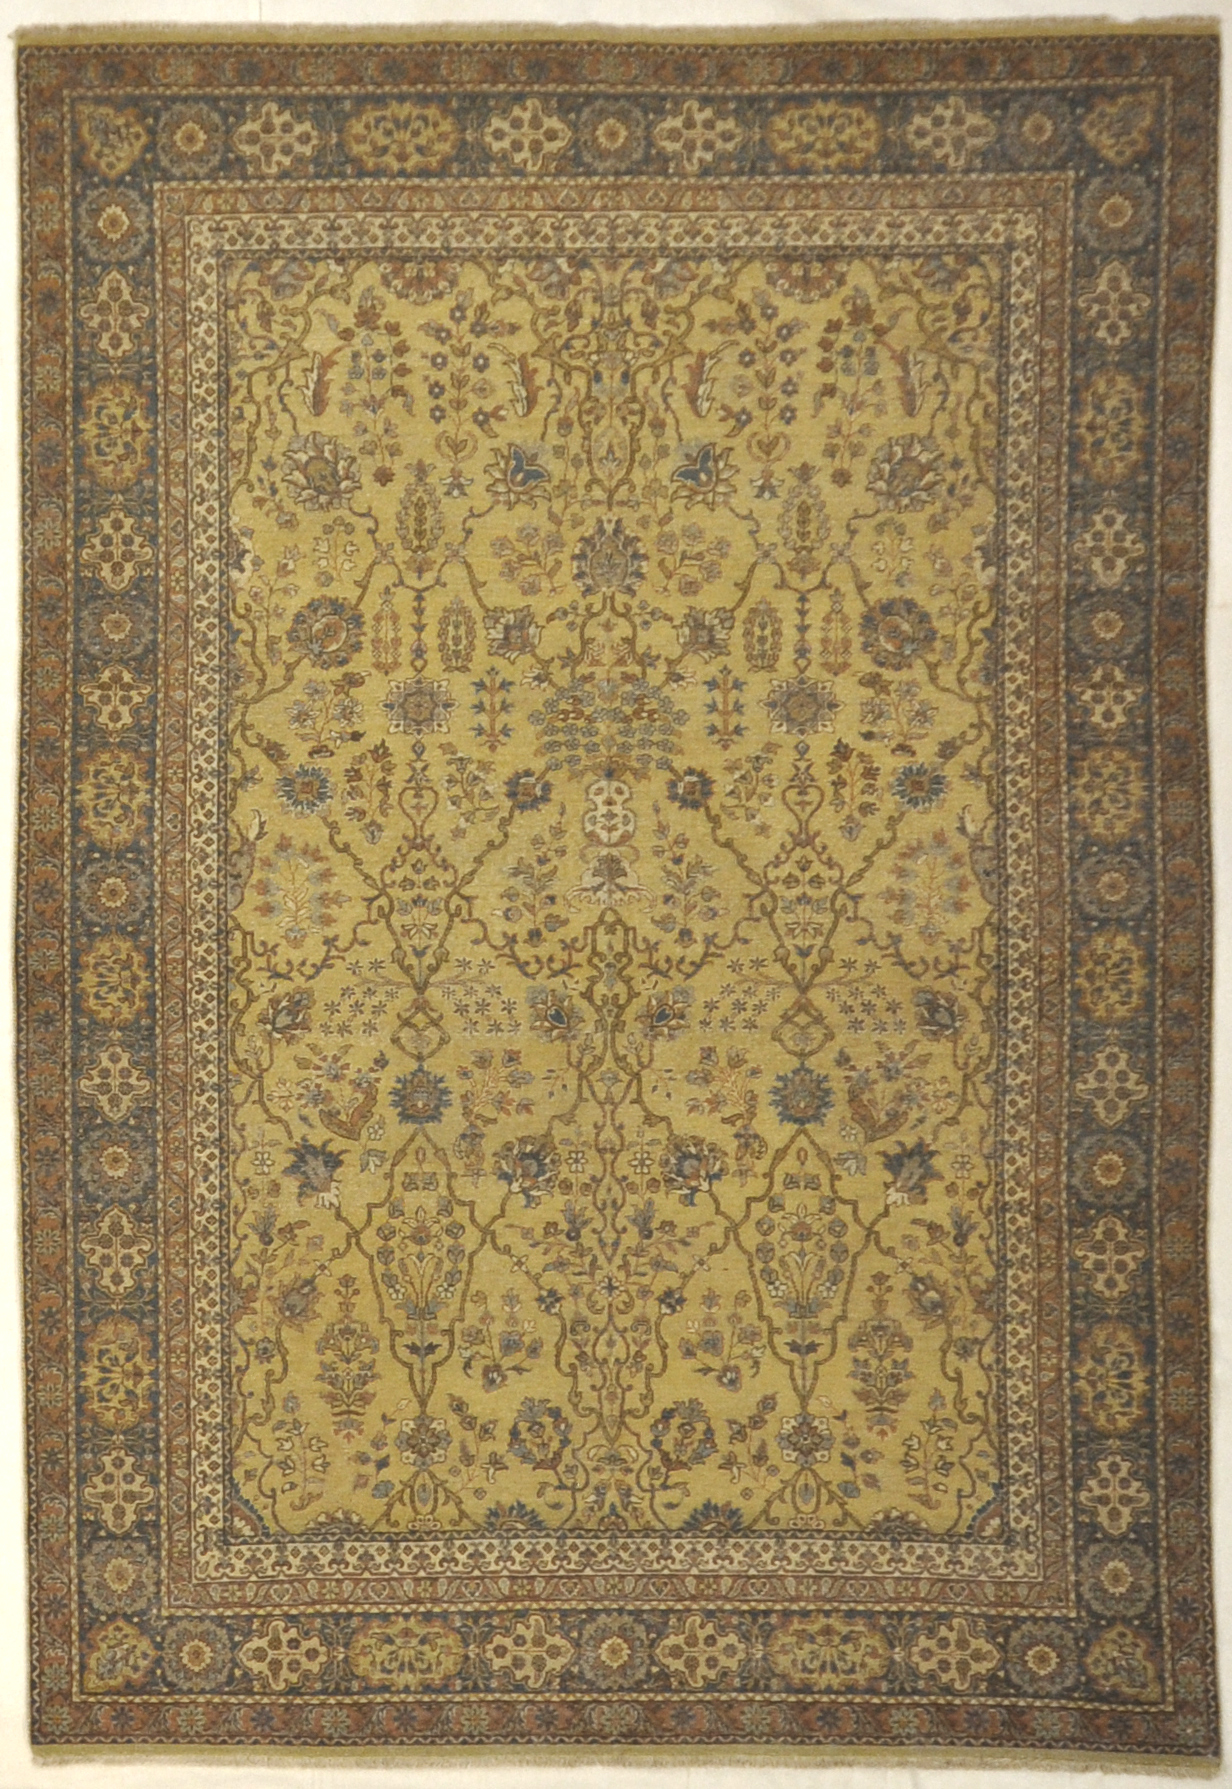 Antique Yellow and Blue Larestan Indian Rug. A piece of genuine antique woven carpet art sold by the Santa Barbara Design Center, Rugs and More.